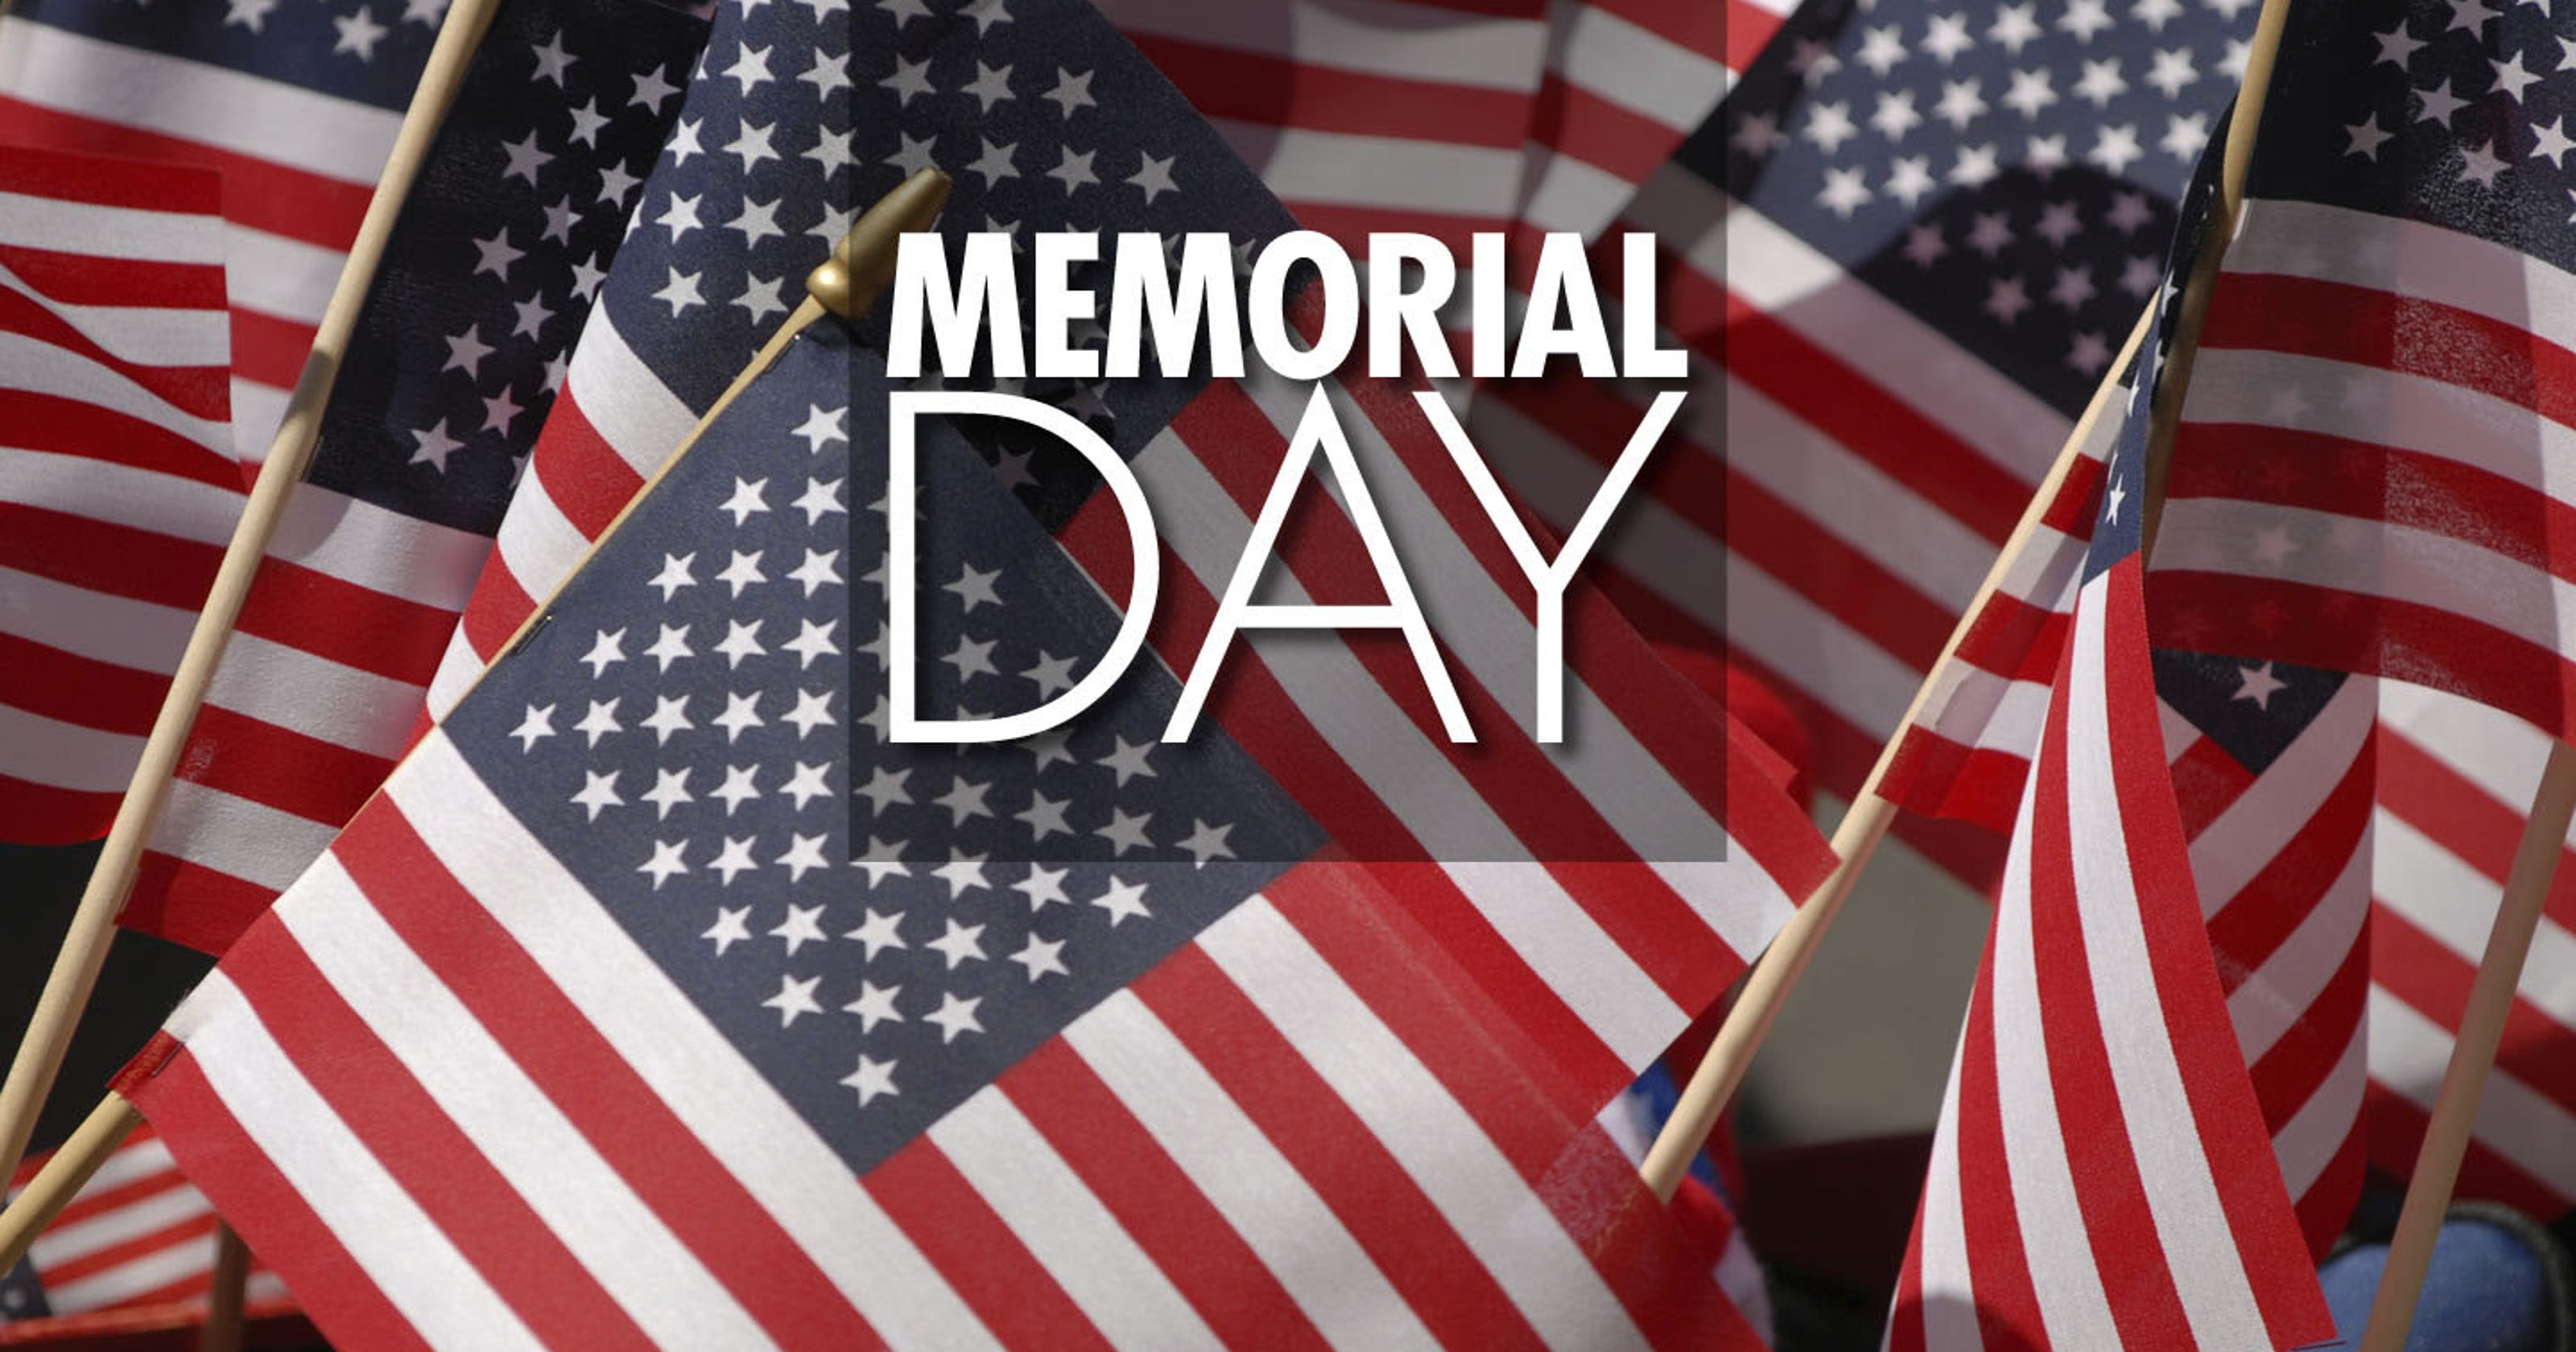 Area Memorial Day services planned